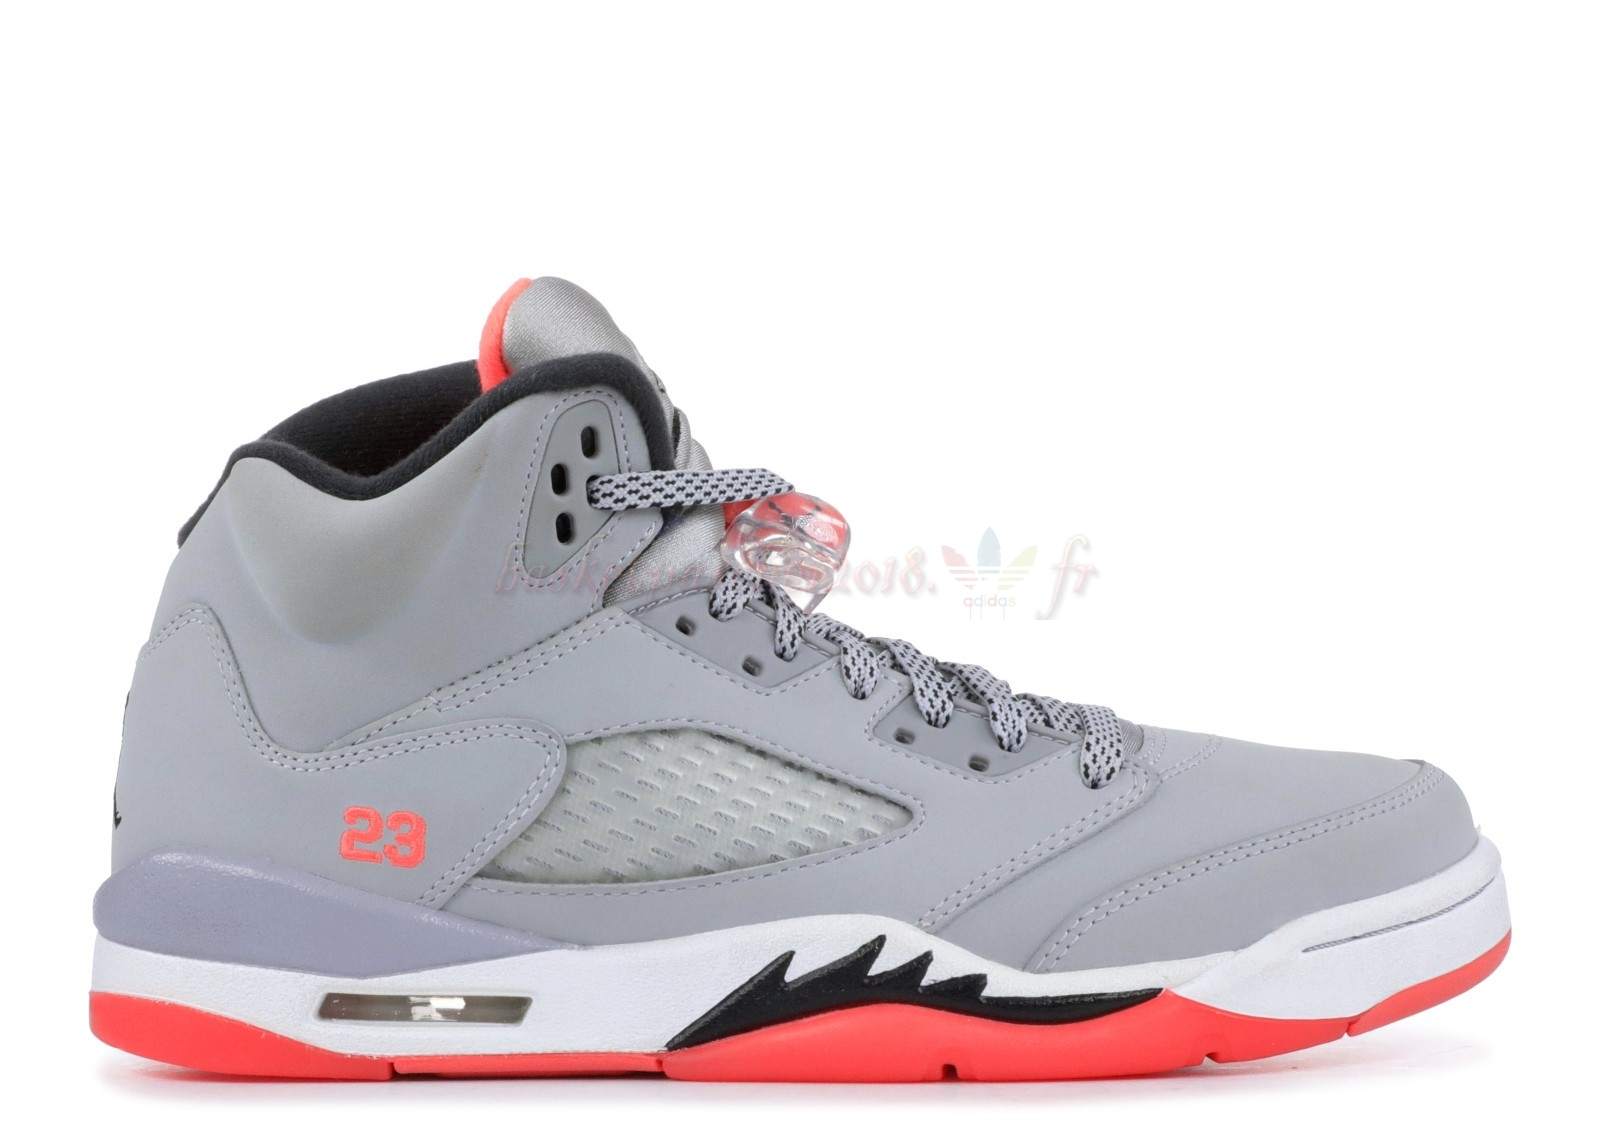 "Vente Chaude Chaussures De Basketball Femme Air Jordan 5 Retro (Gs) ""Hot Lava"" Gris Orange (440892-018) Pas Cher"